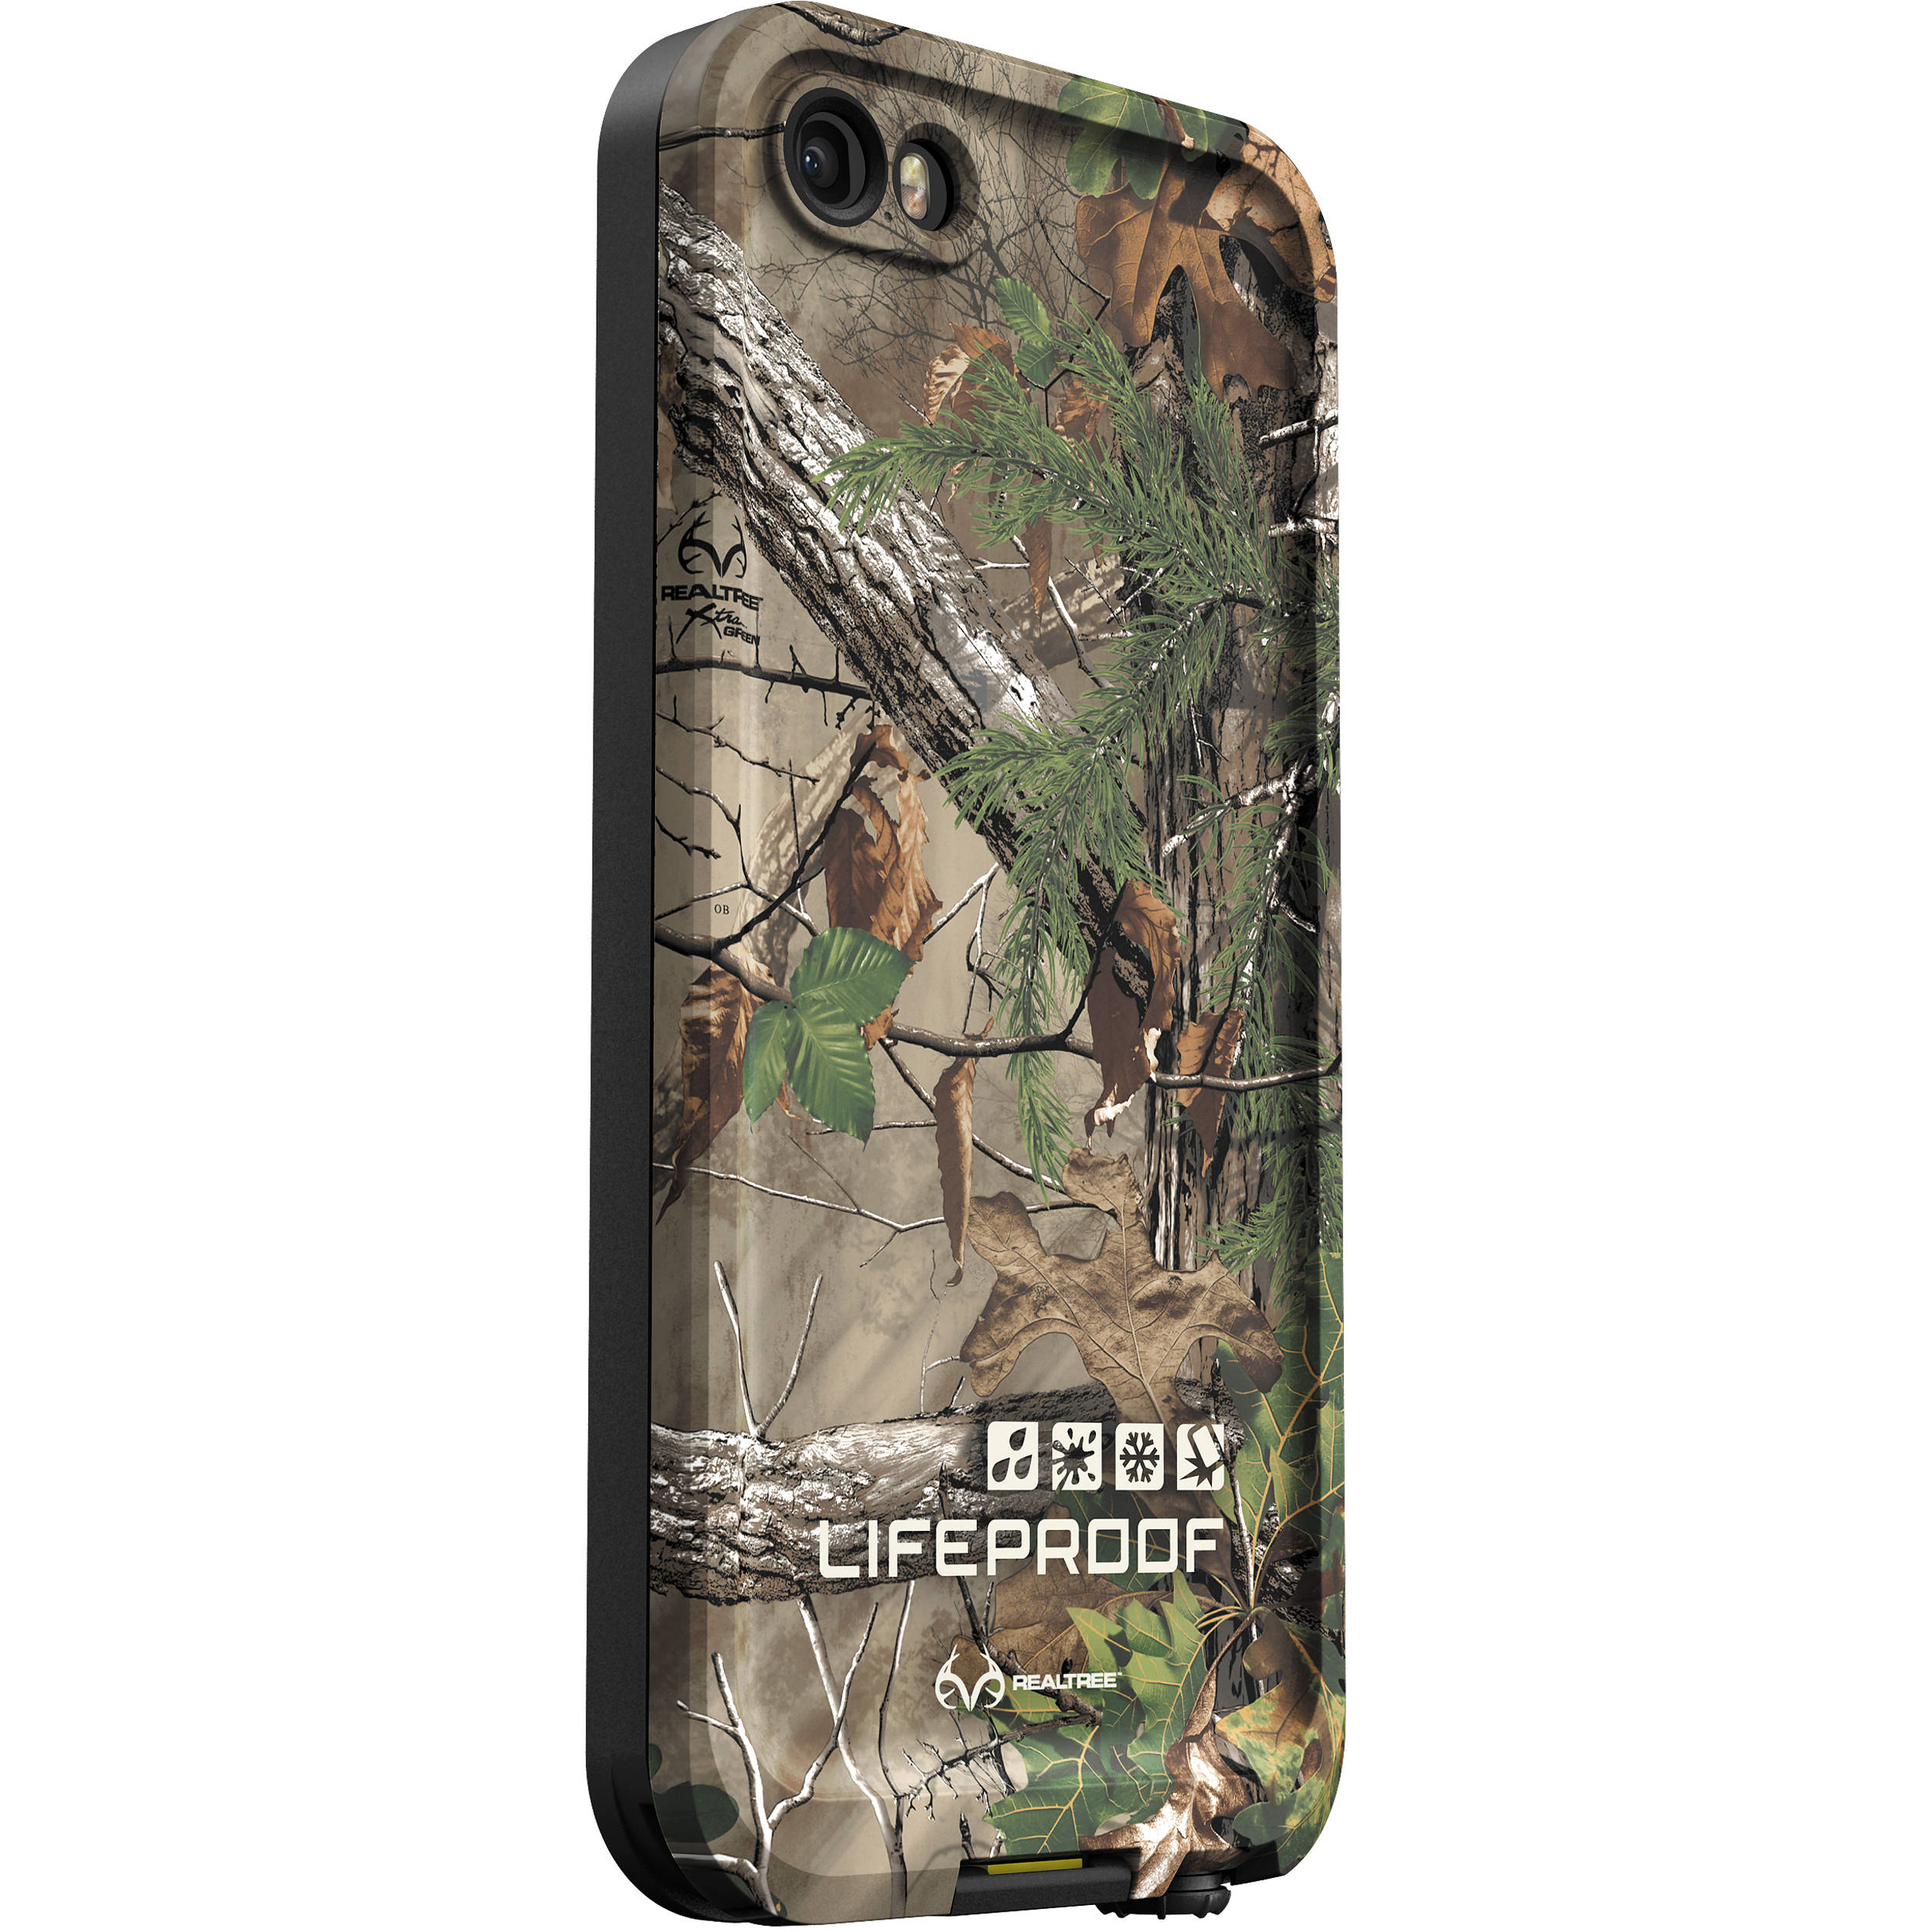 new concept f44dc 117ad LifeProof frē Case for iPhone 5/5s/SE (Olive Drab/RealTree Xtra Green)